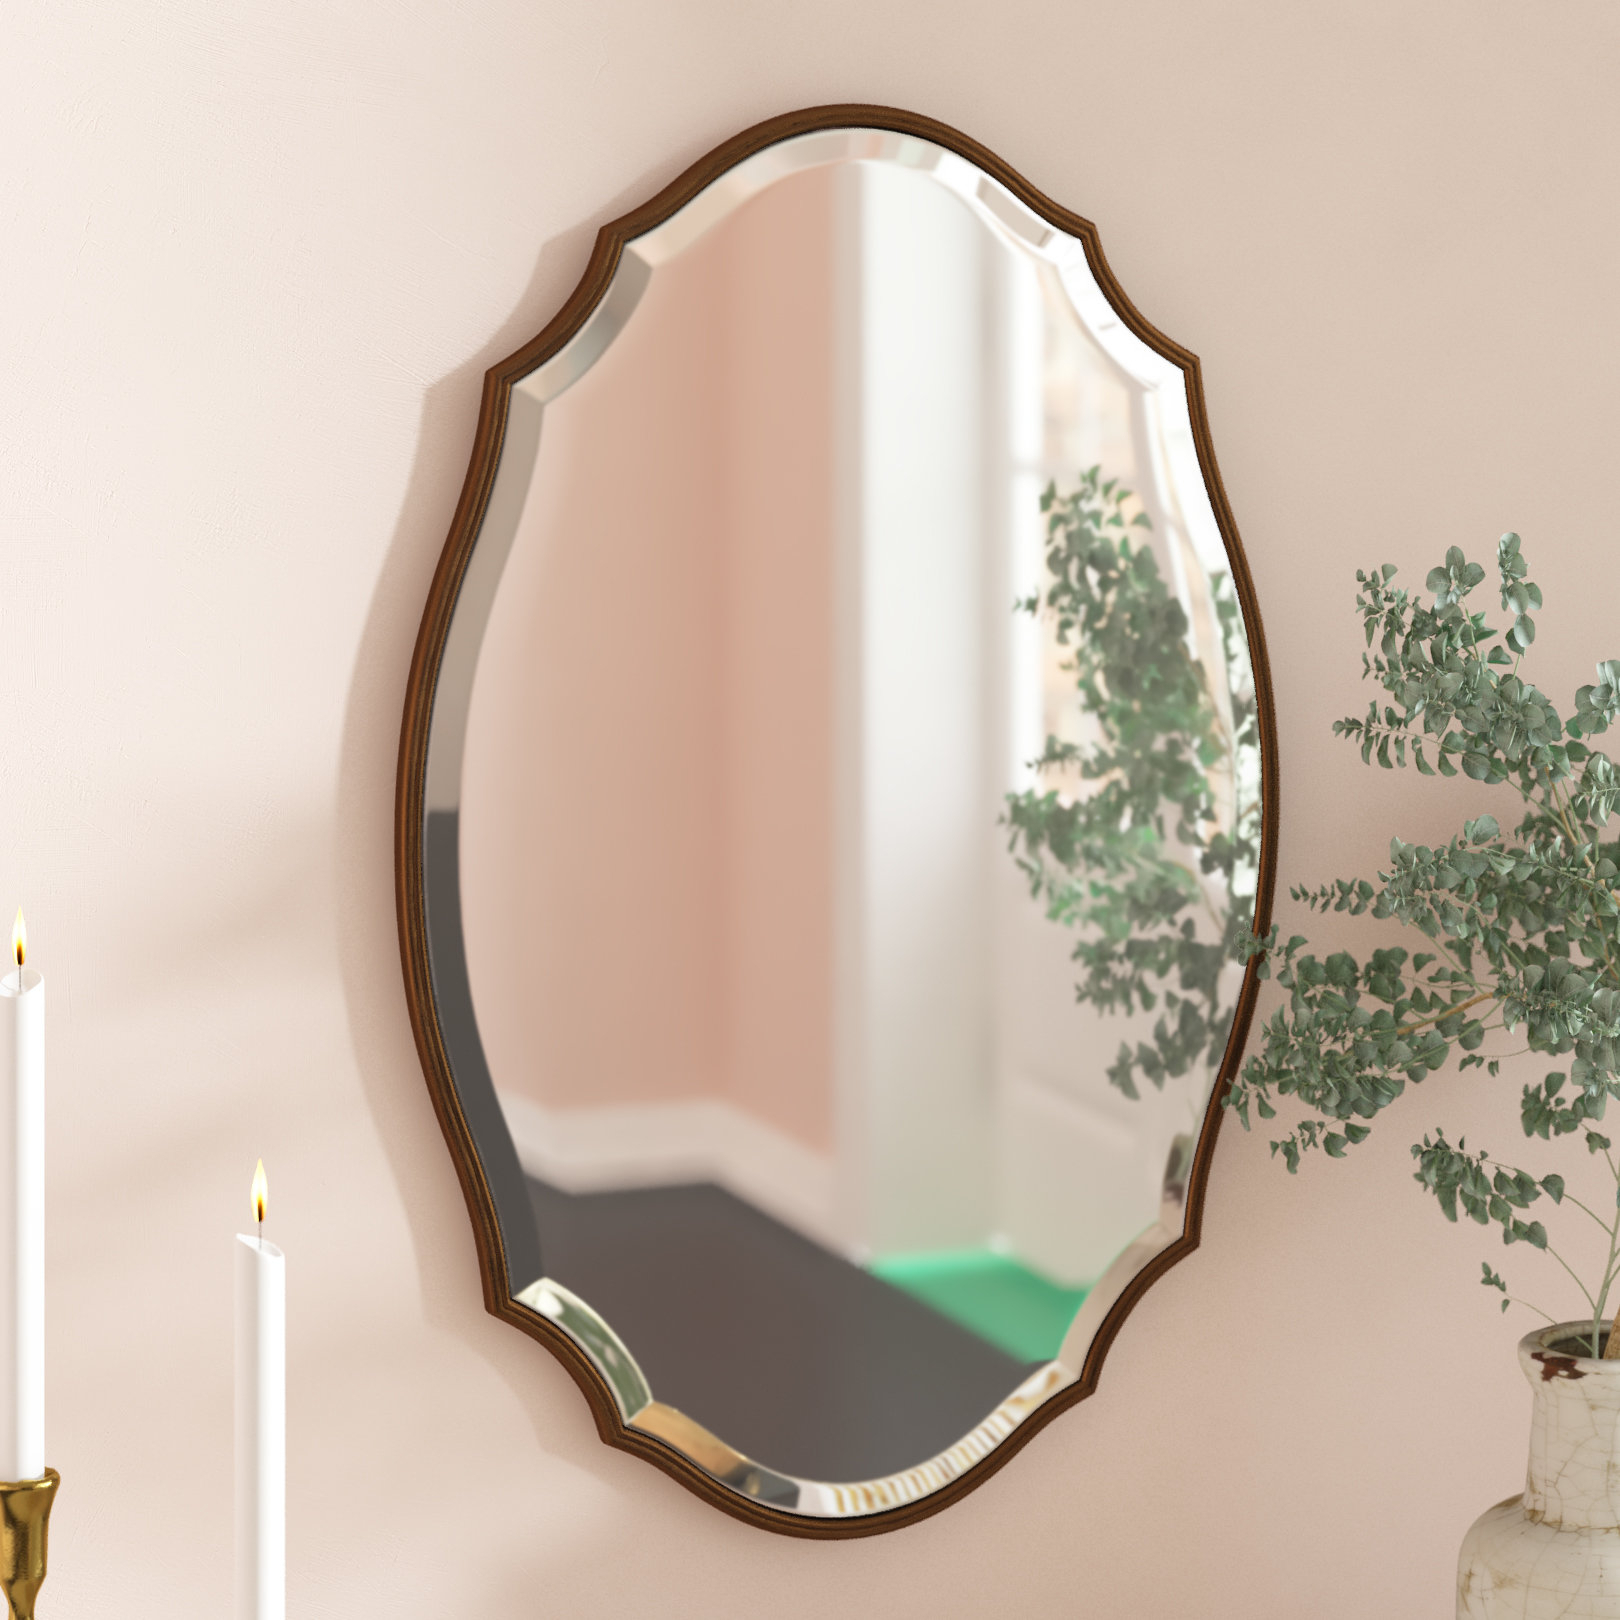 Modern & Contemporary Beveled Accent Mirror Intended For Moseley Accent Mirrors (View 6 of 20)